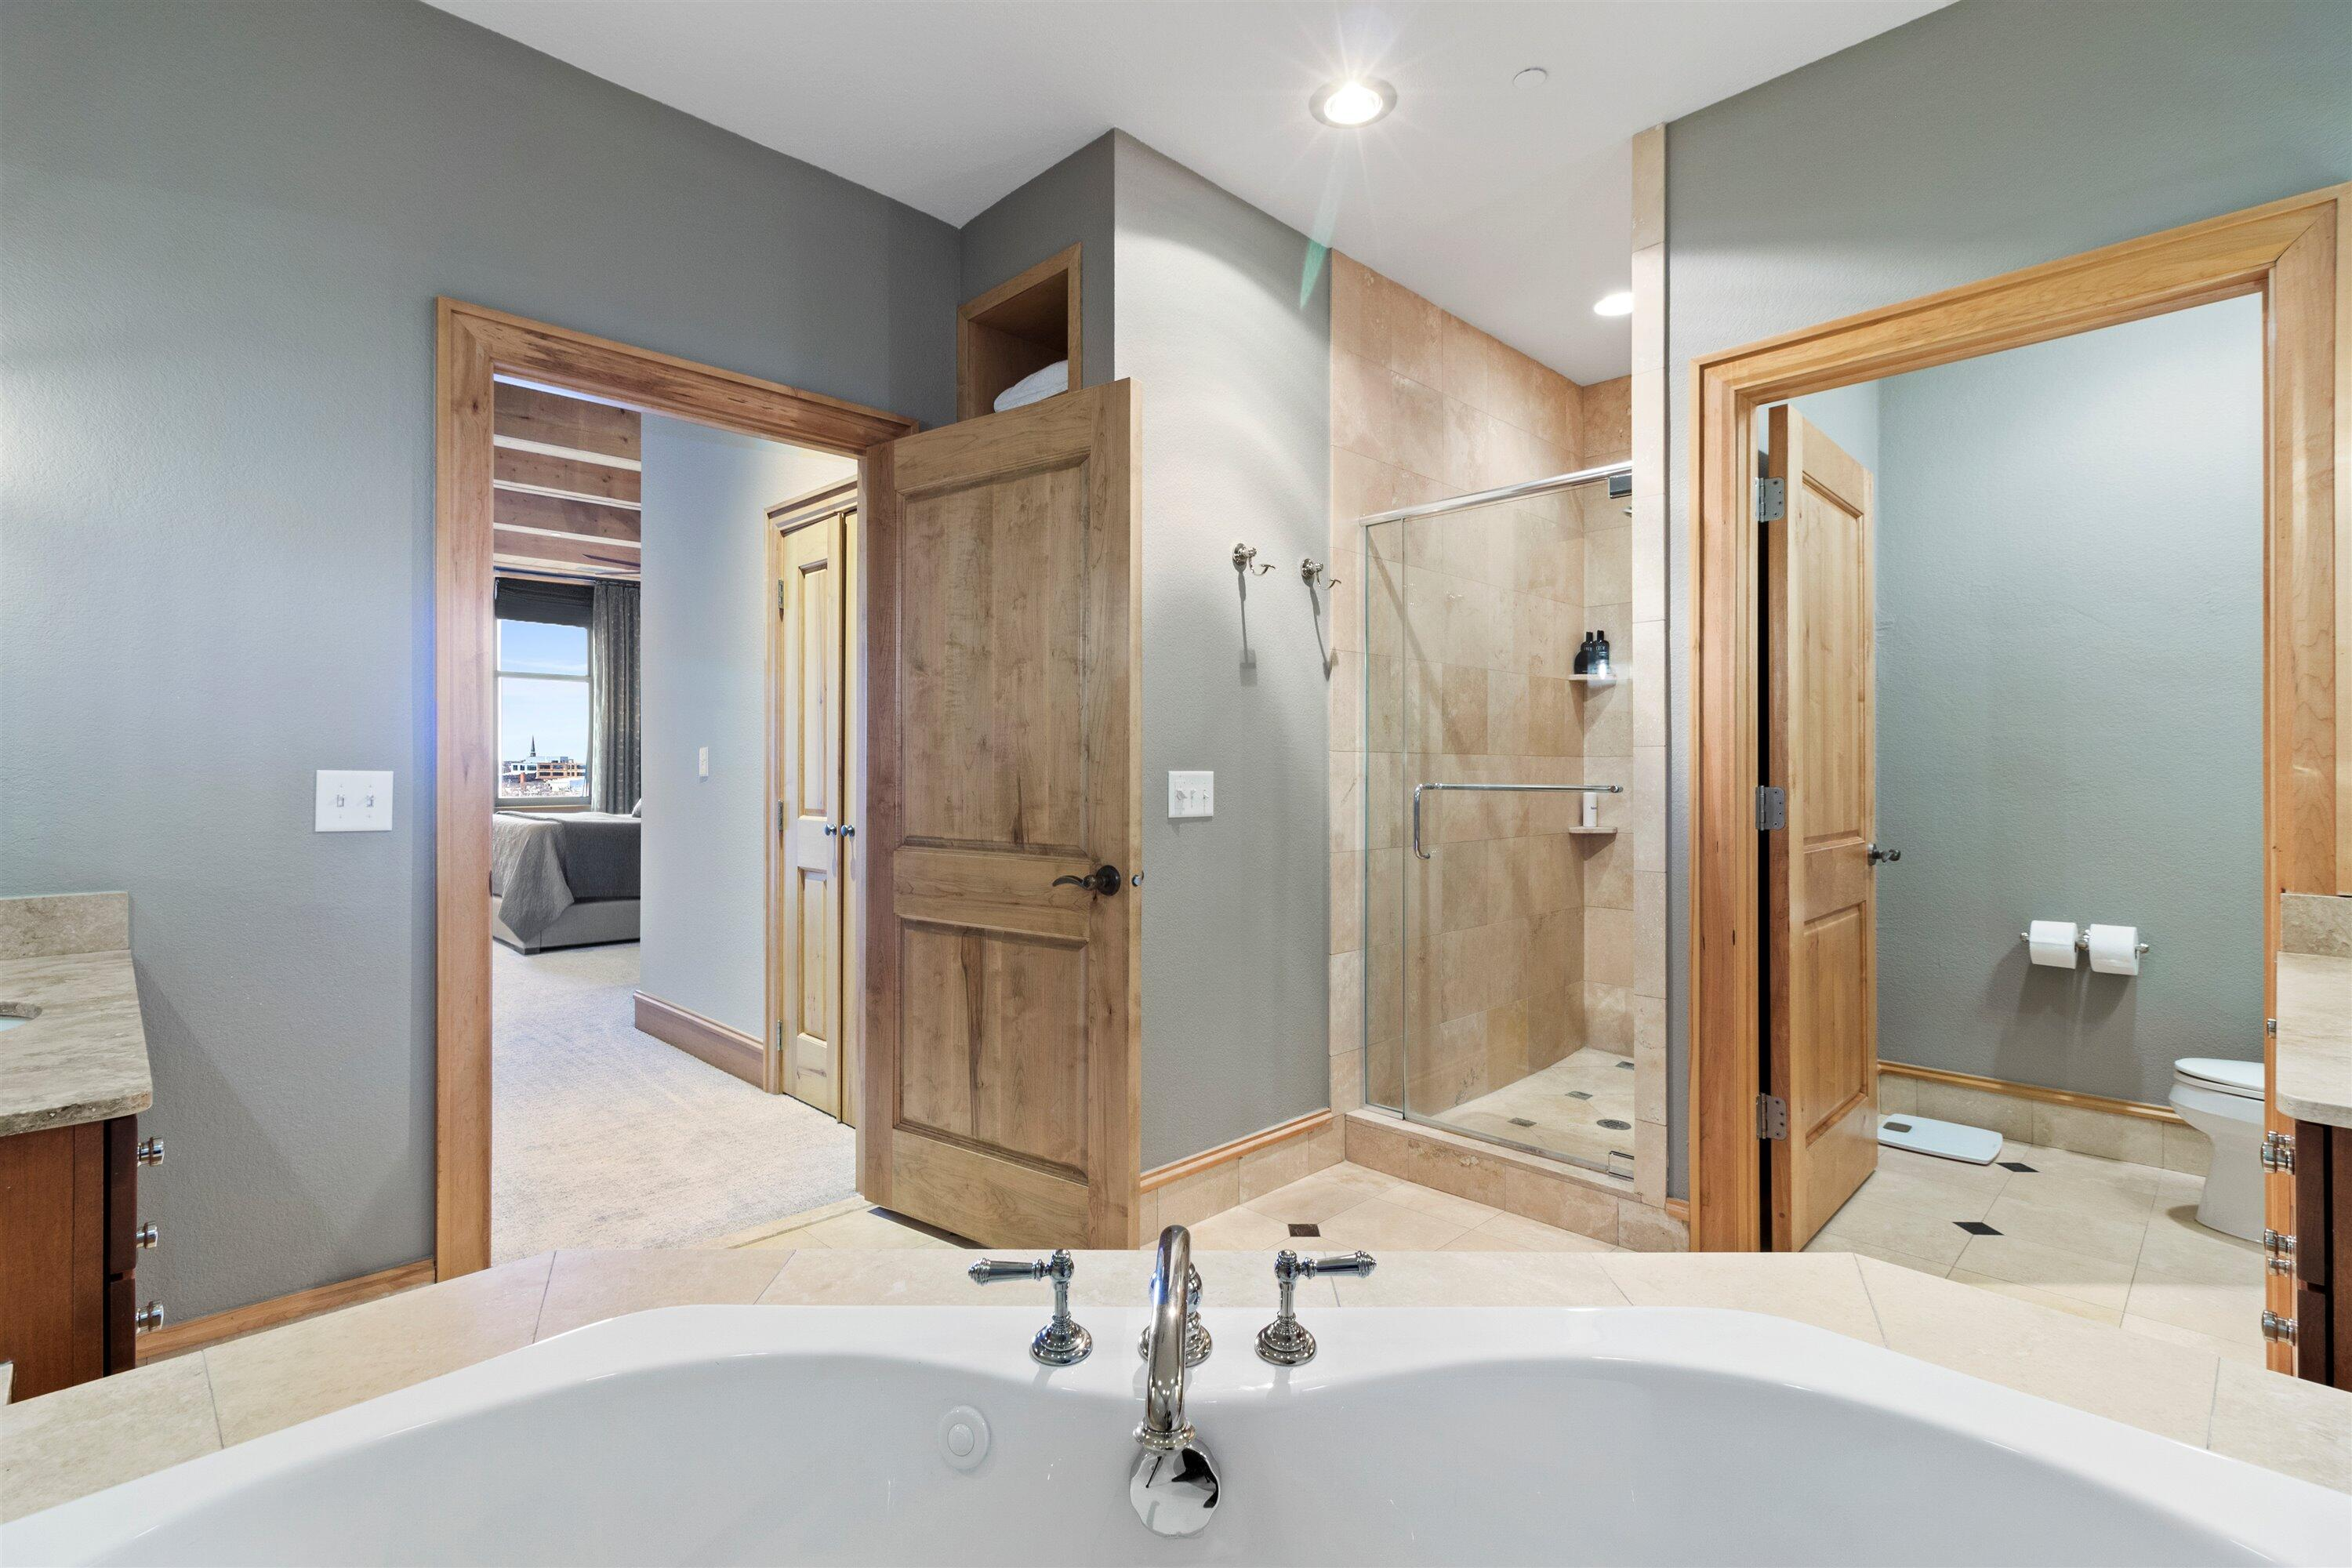 Another View of the Master Bath